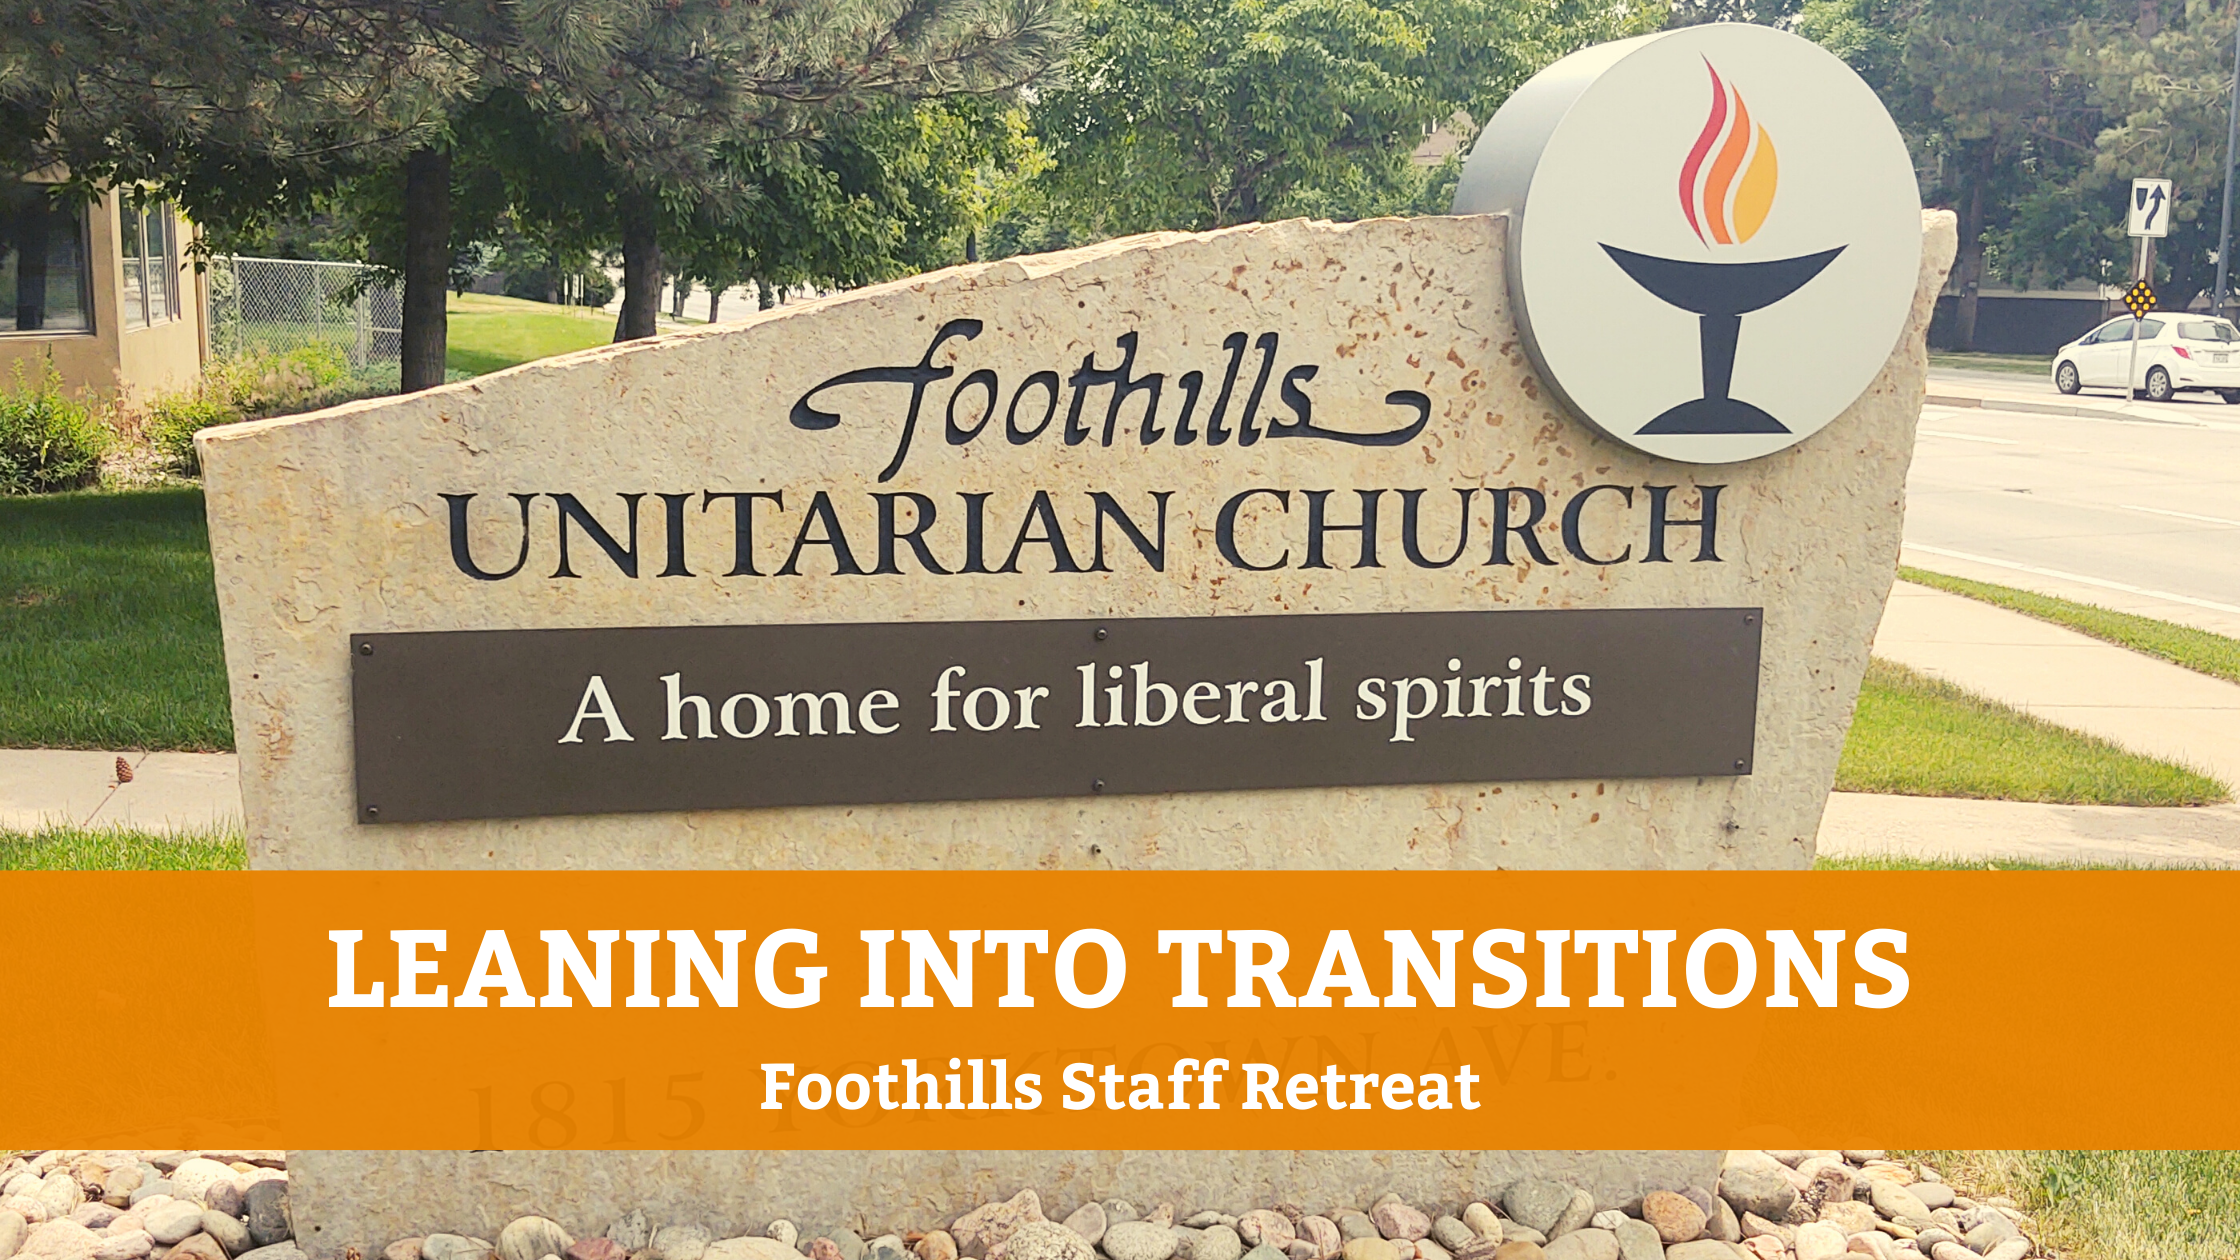 Leaning Into Transitions: Foothills Staff Retreat